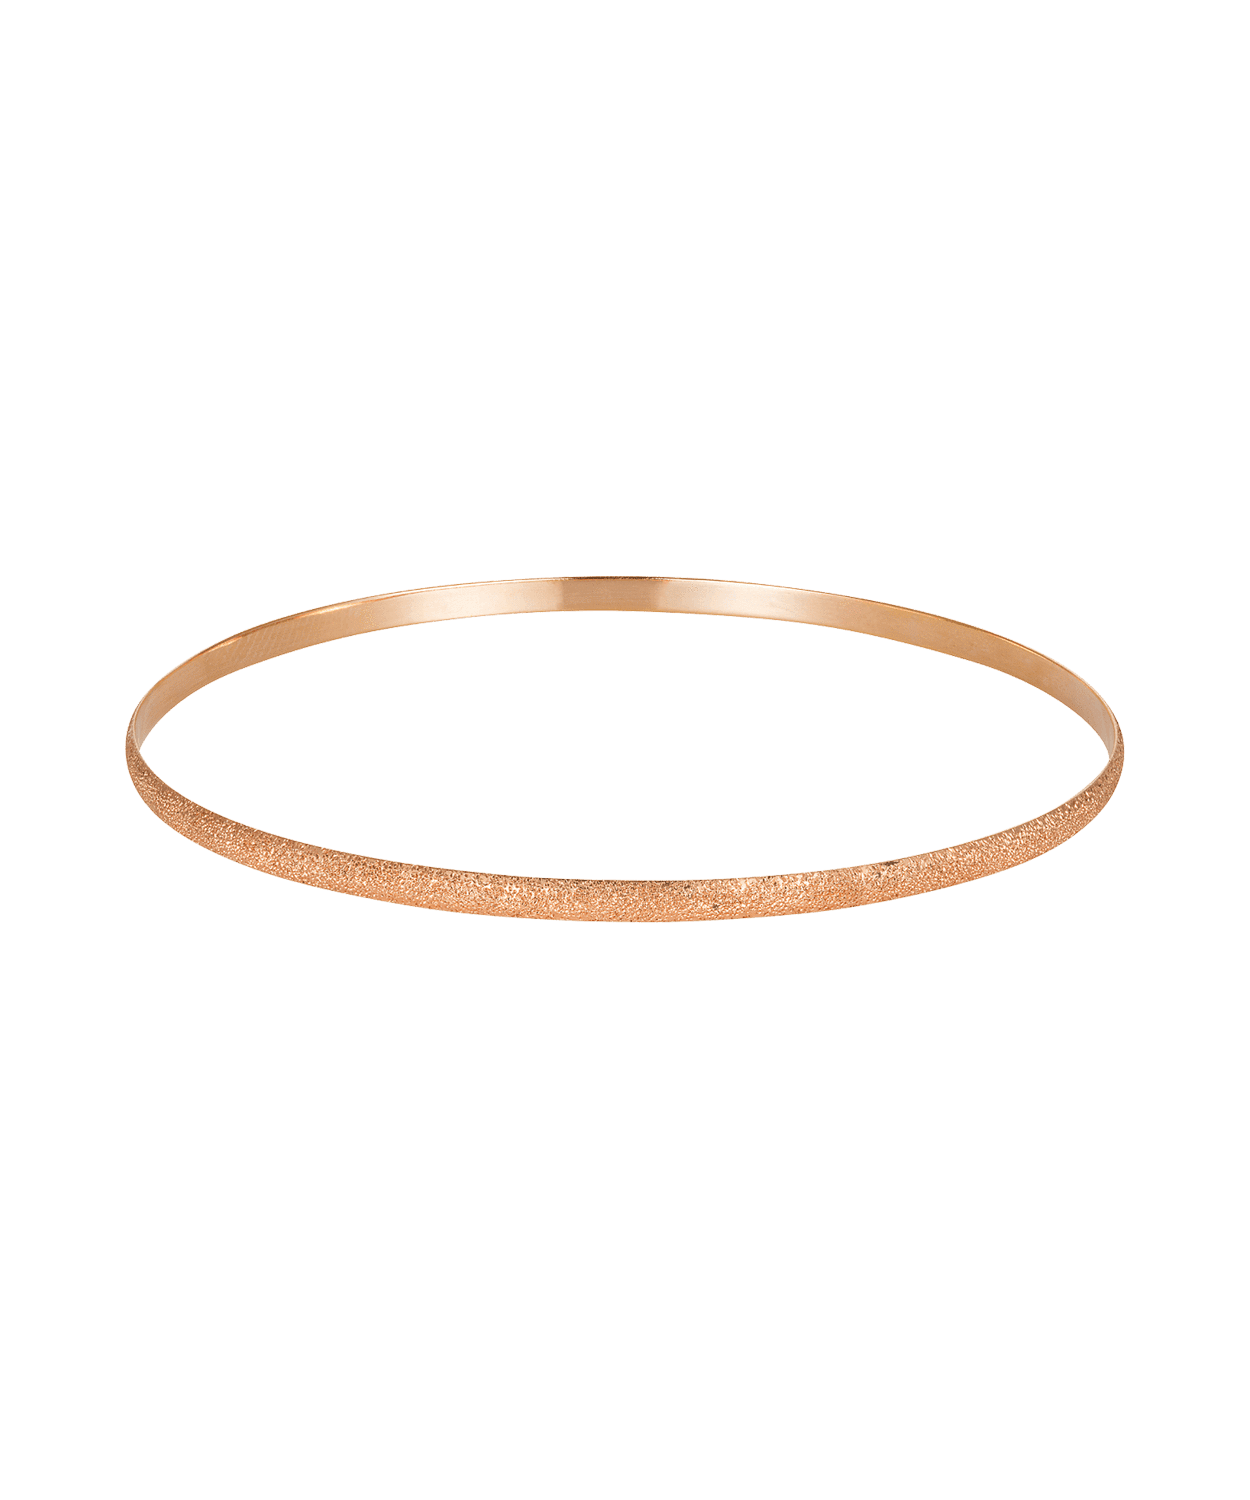 Carolina Bucci Florentine Finish Flat Bangle Pink Gold